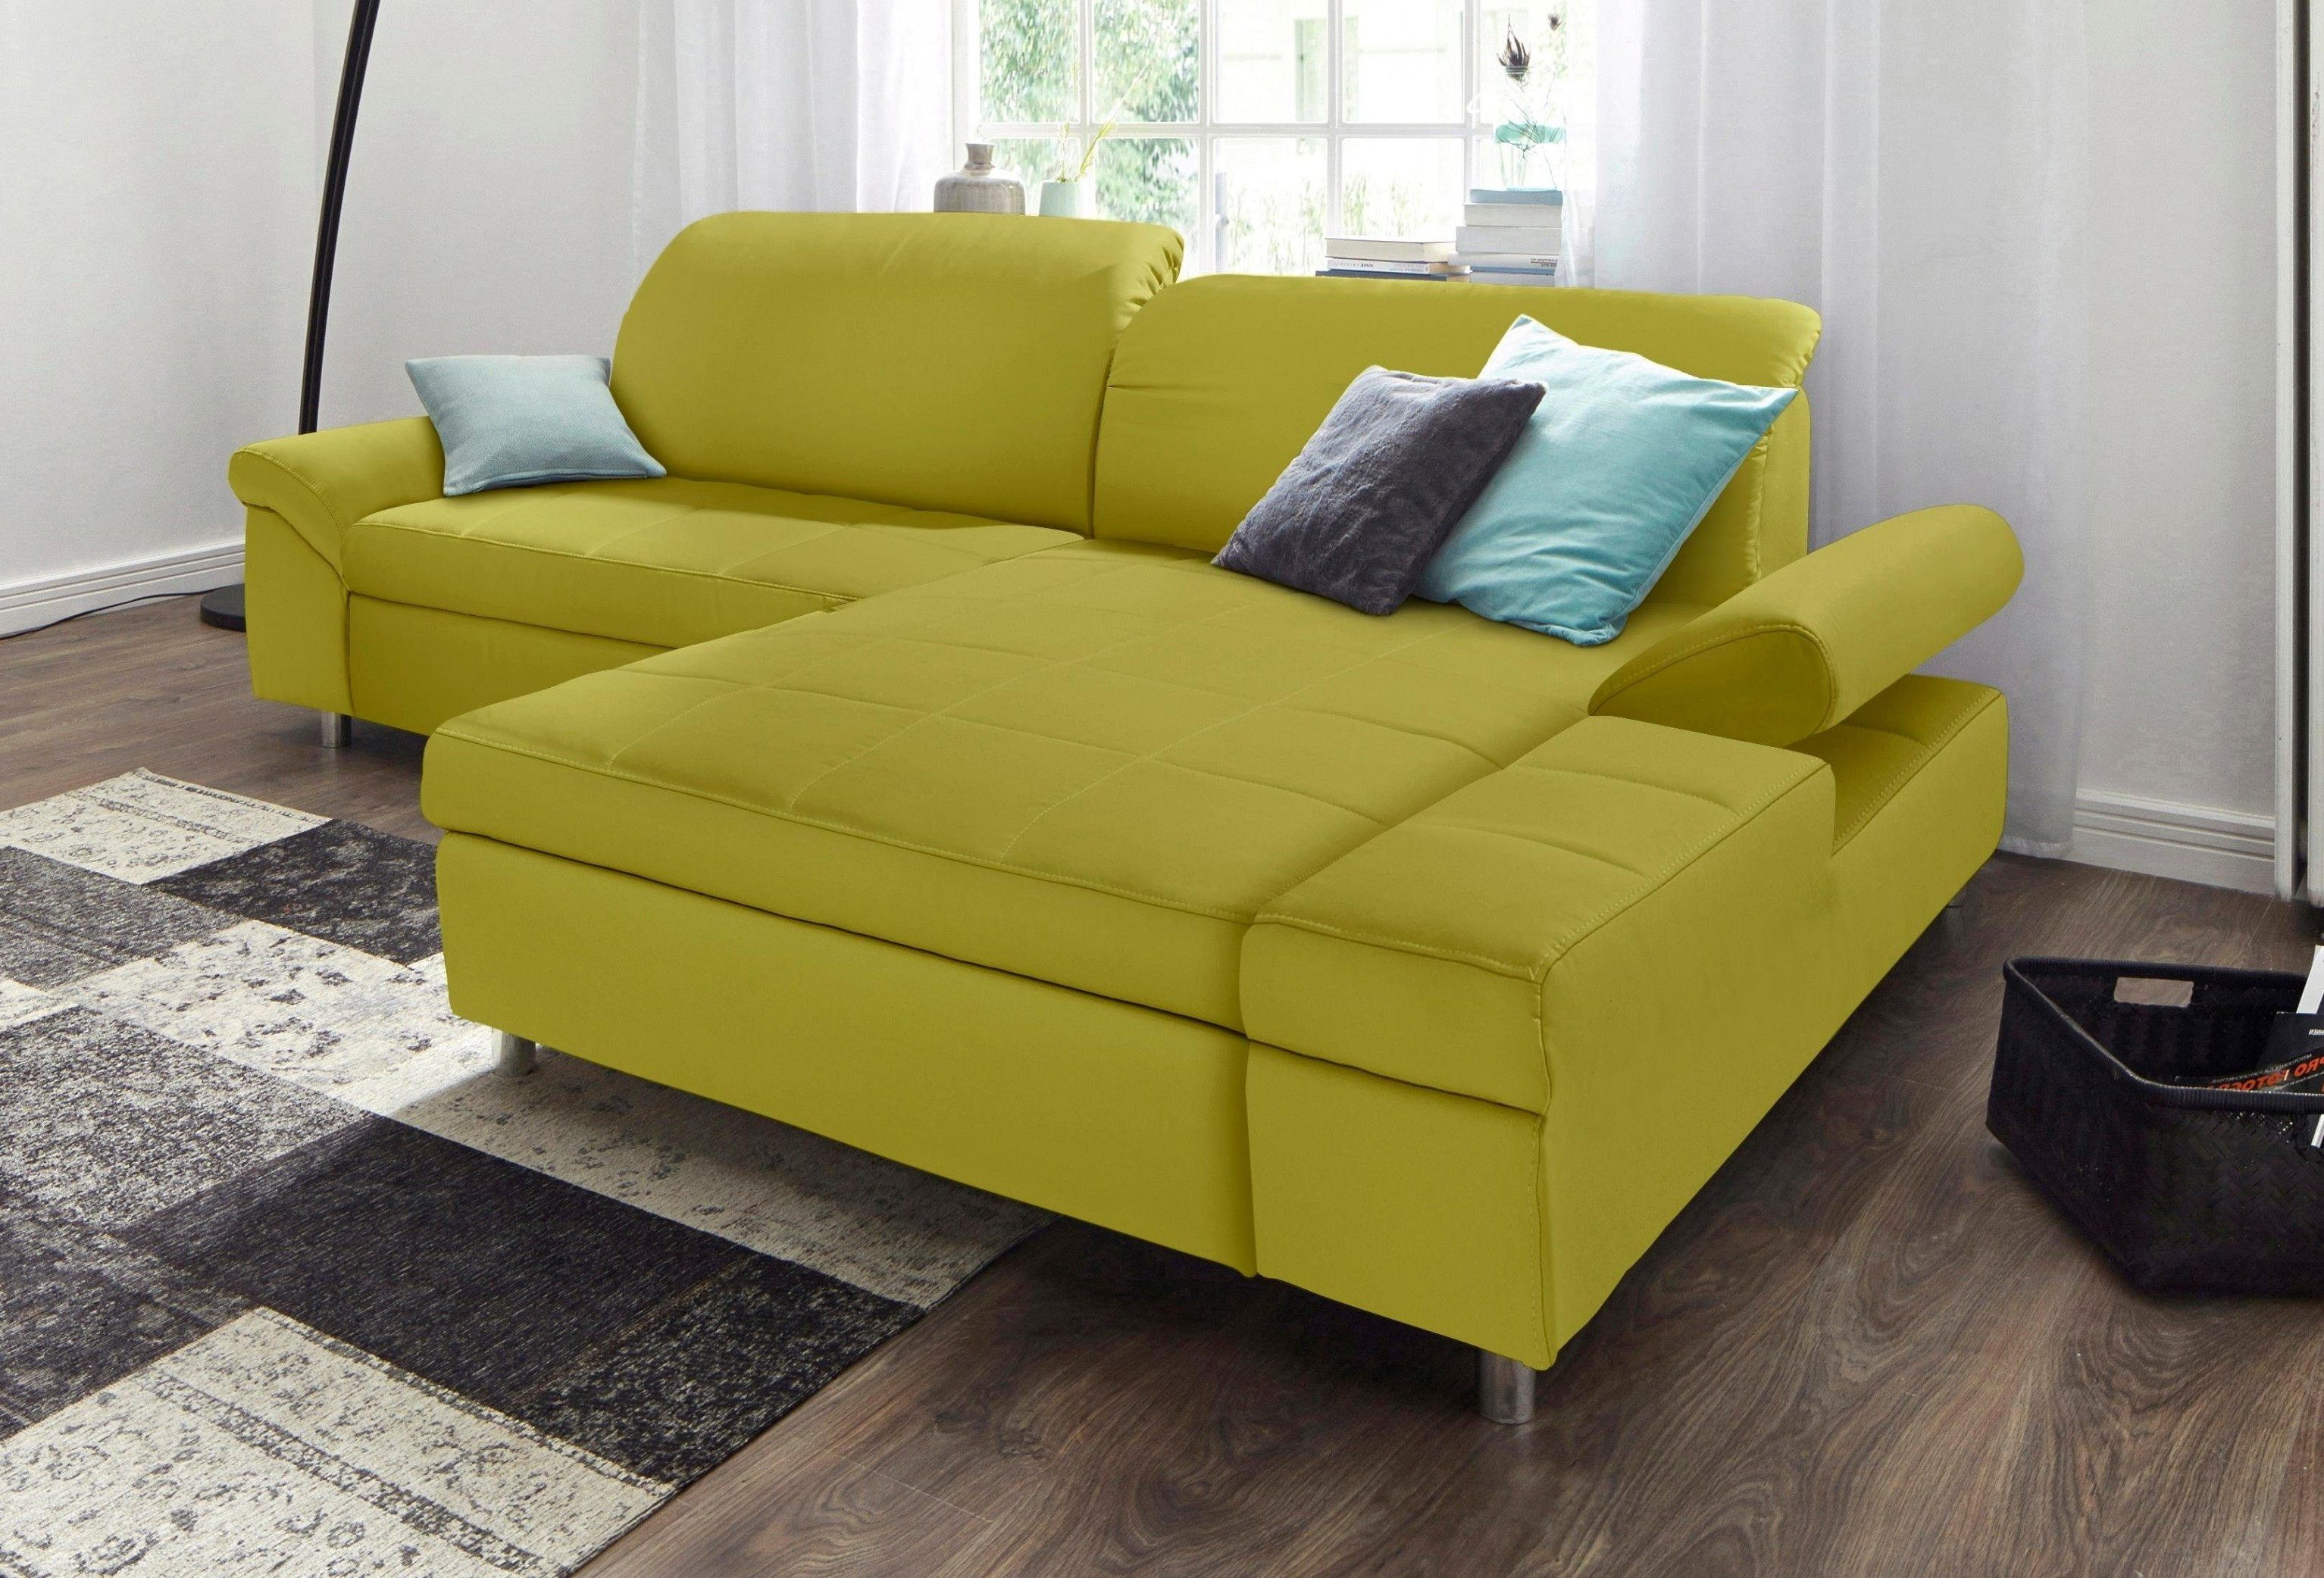 Couch Und Teppich Reinigen Pin By 1024 On Pillow Pinterest Sofa Couch And Sofa Bed